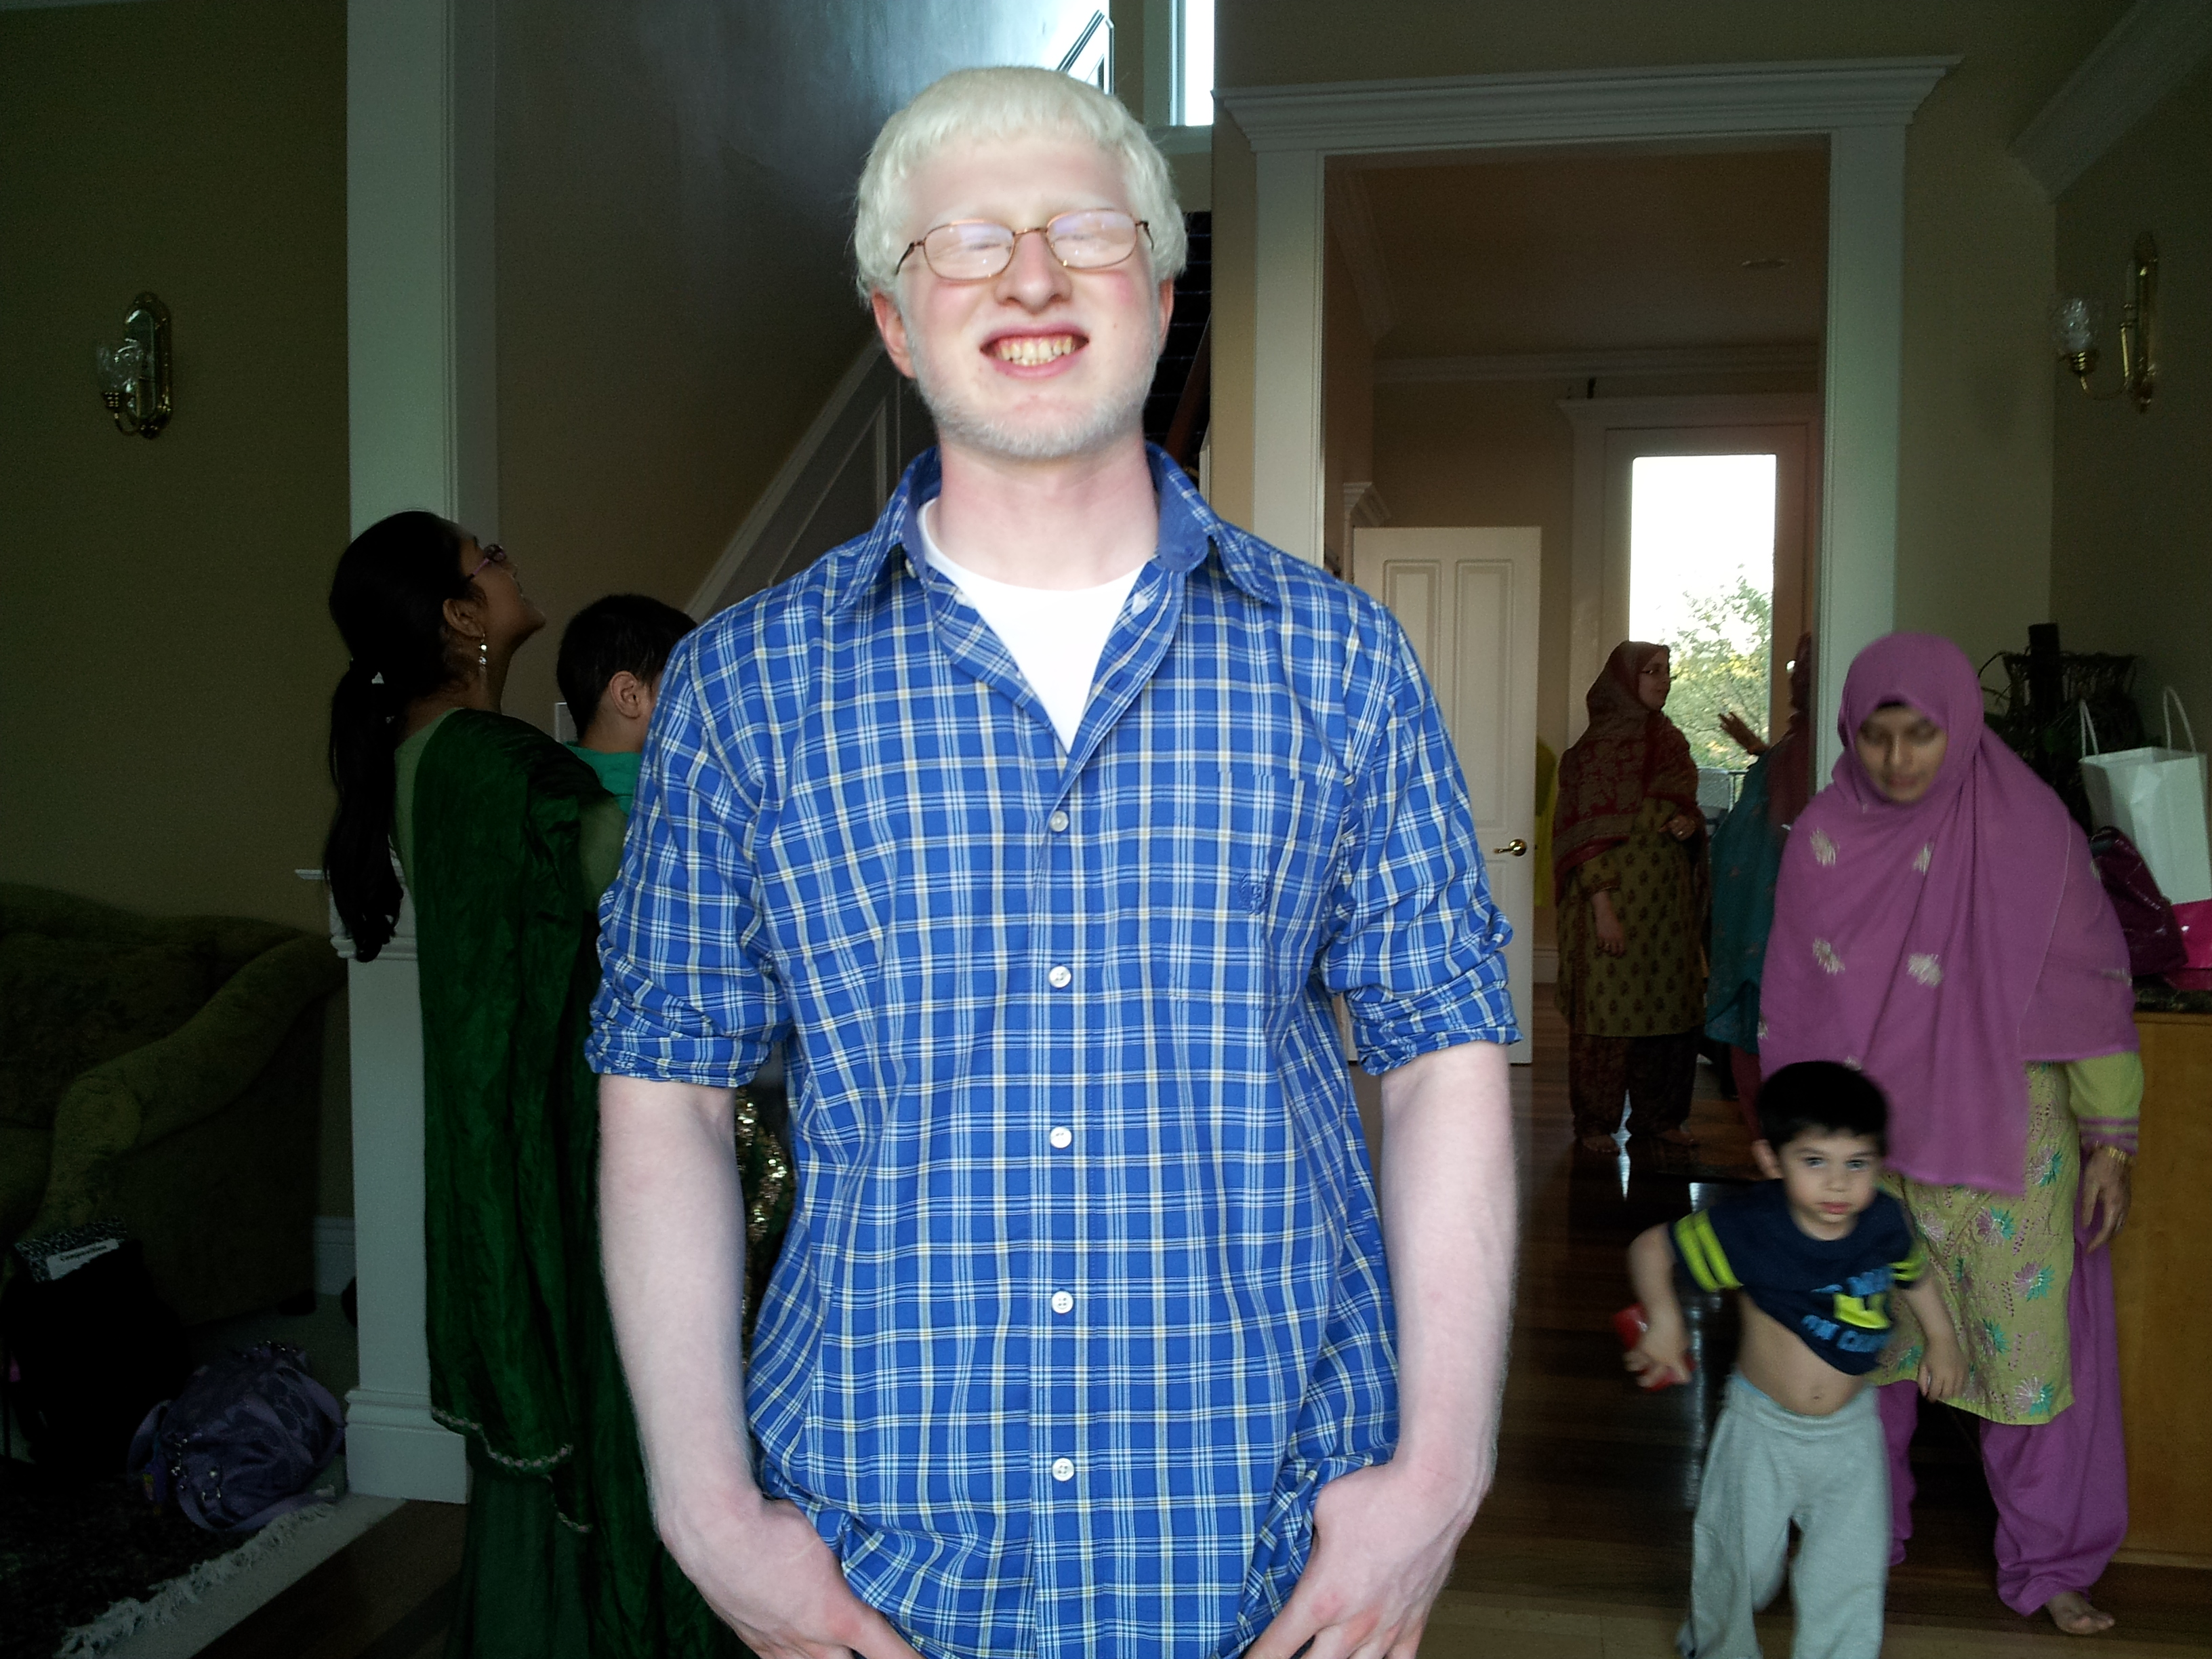 ocutech inc awards scholarship to high school student below in an attempt to increase awareness of the benefit of low vision aids for individuals albinism ocutech the developer of eyeglass mounted telescopic